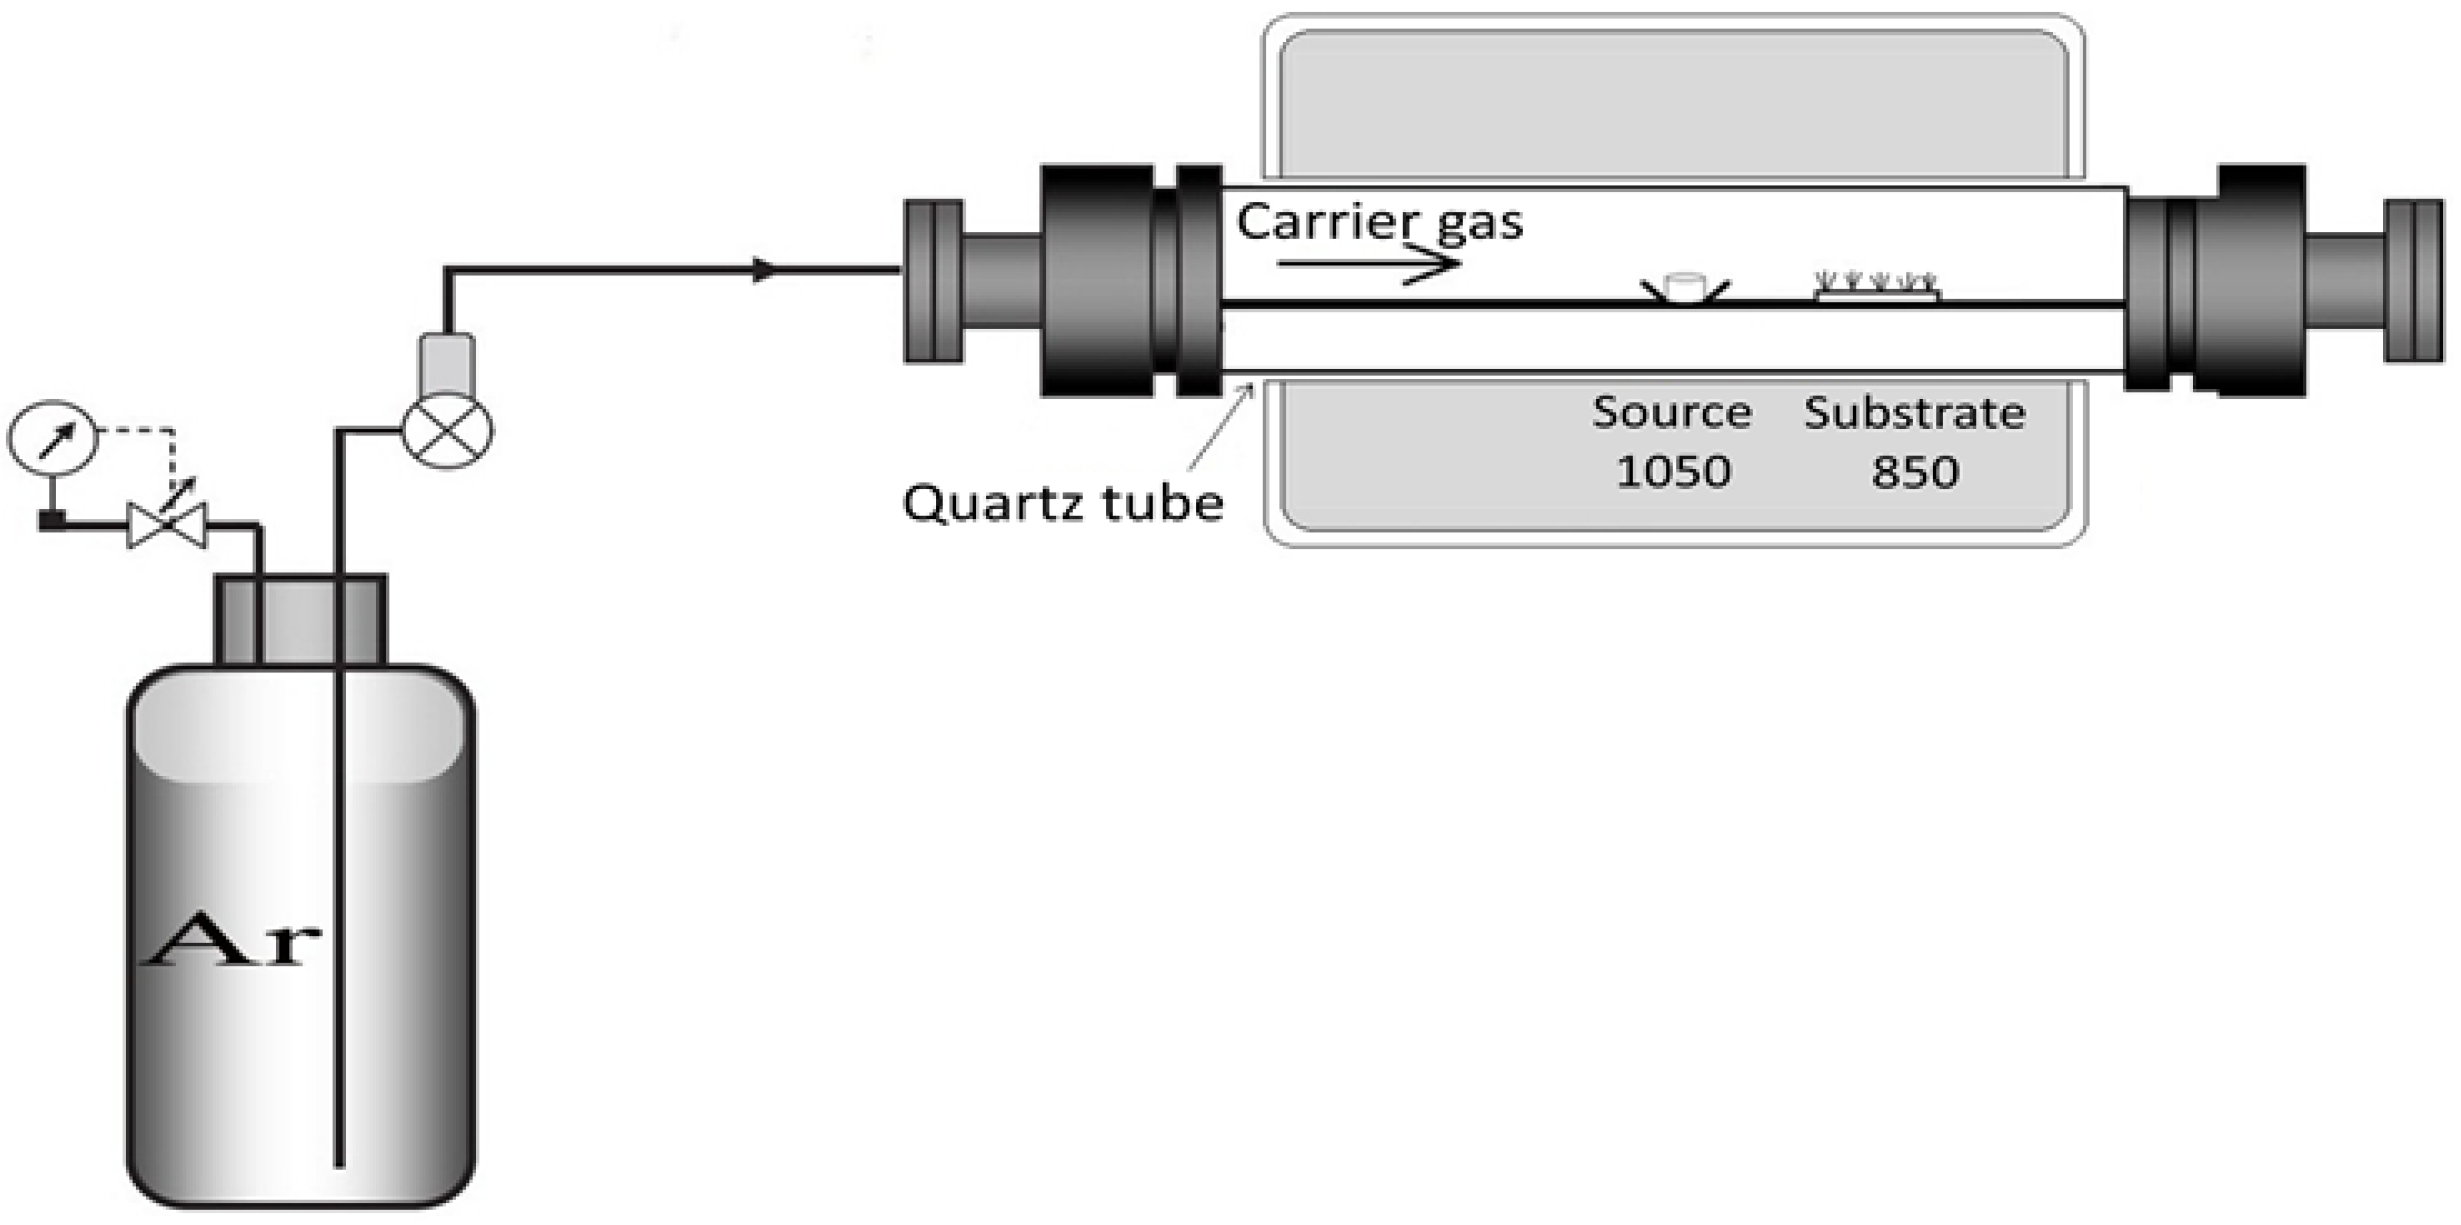 Effect Of Argon Carrieffect Carrier Gas Flux On Tio2 Furnace Air Flow Direction Diagram Figure 3